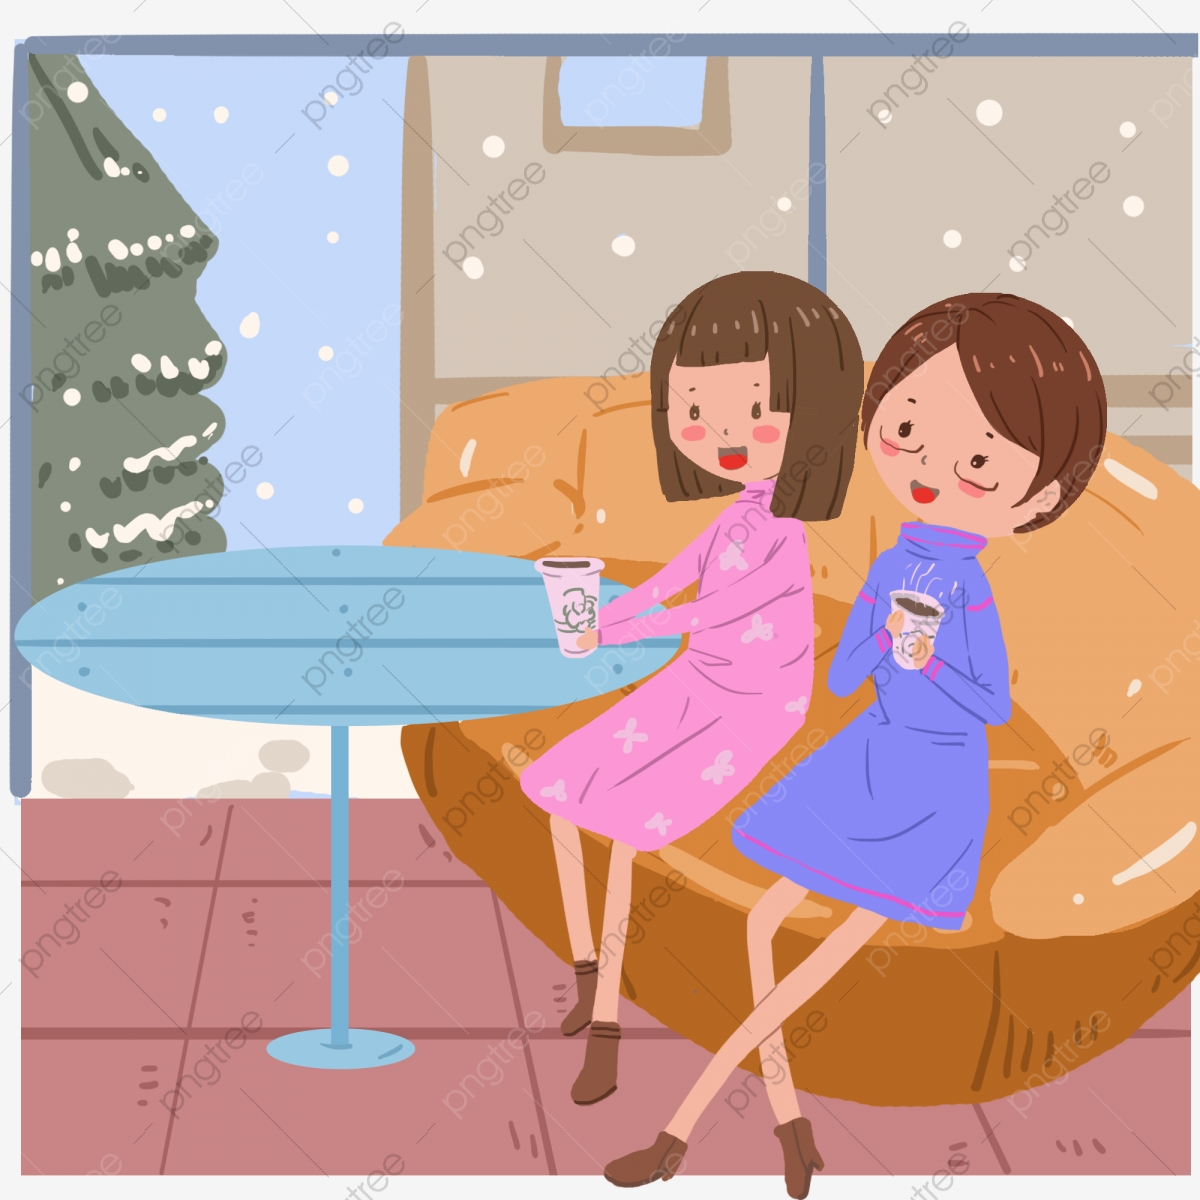 Cold Winter Winter Drinking Steaming Coffee Talking And Laughing.